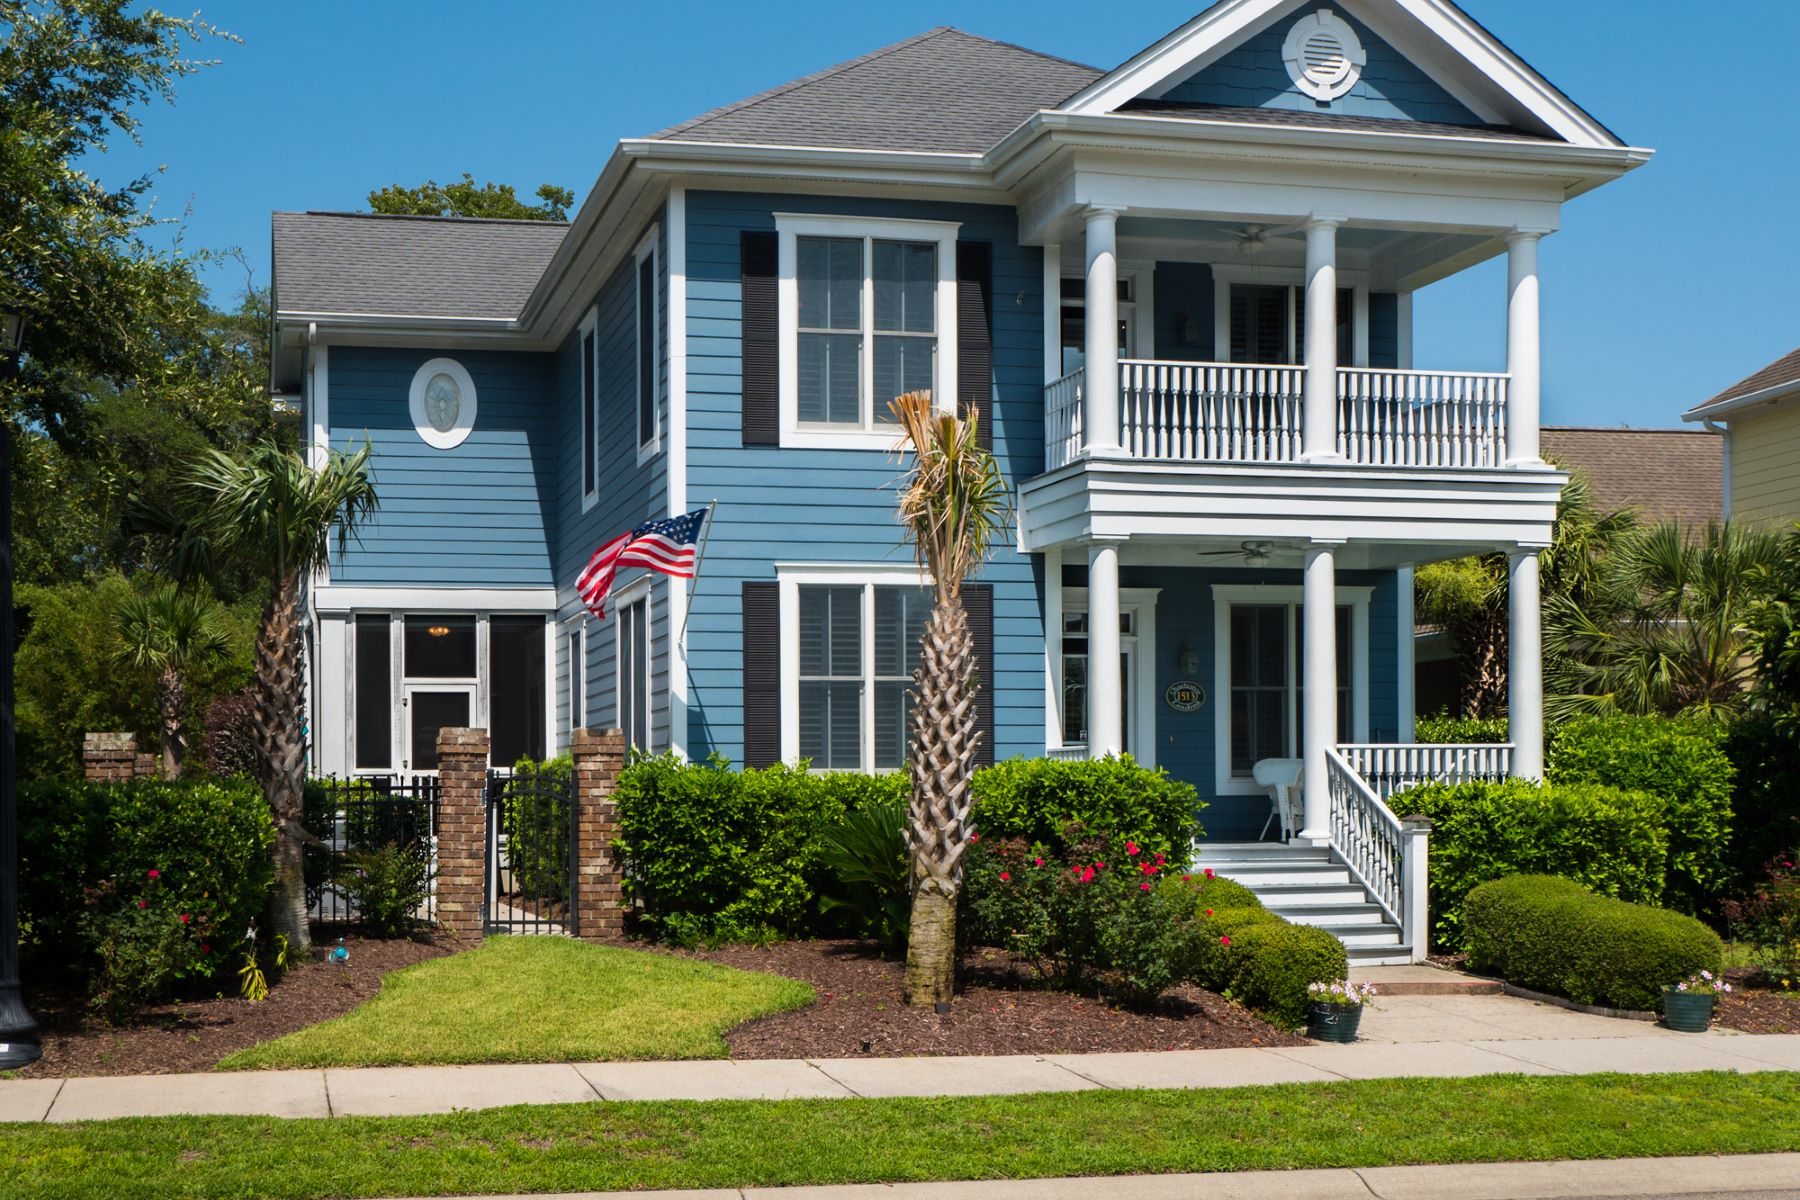 Single Family Home for Sale at Spacious Home in Upscale Subdivision 1513 James Island Ave North Myrtle Beach, South Carolina, 29582 United States